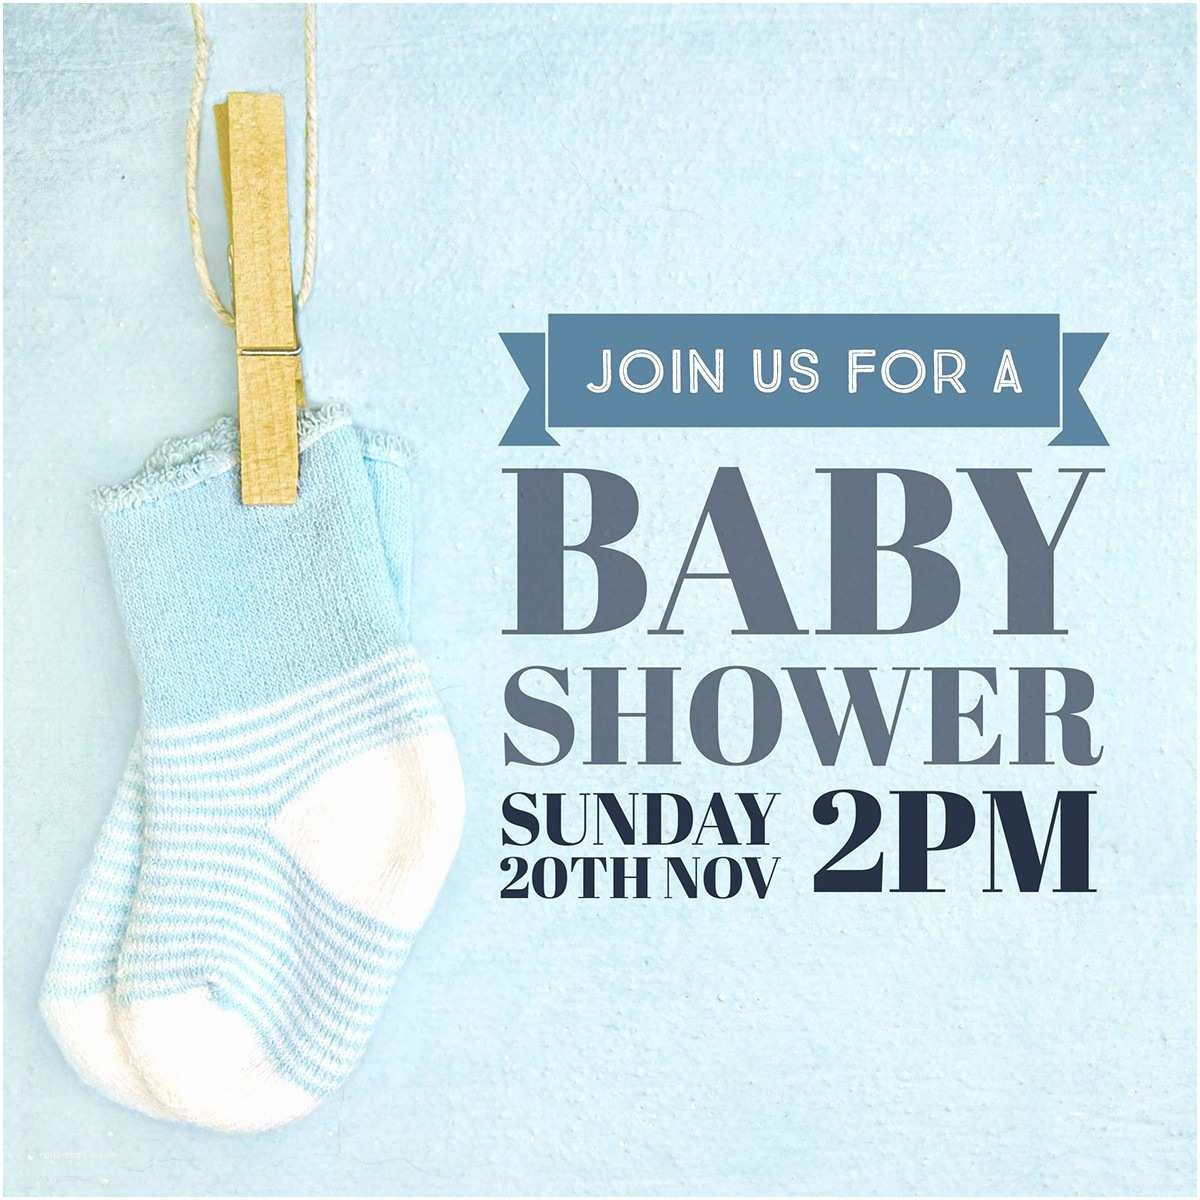 Baby Shower Invitations for Boy Make Your Own Baby Shower Invitations for Free